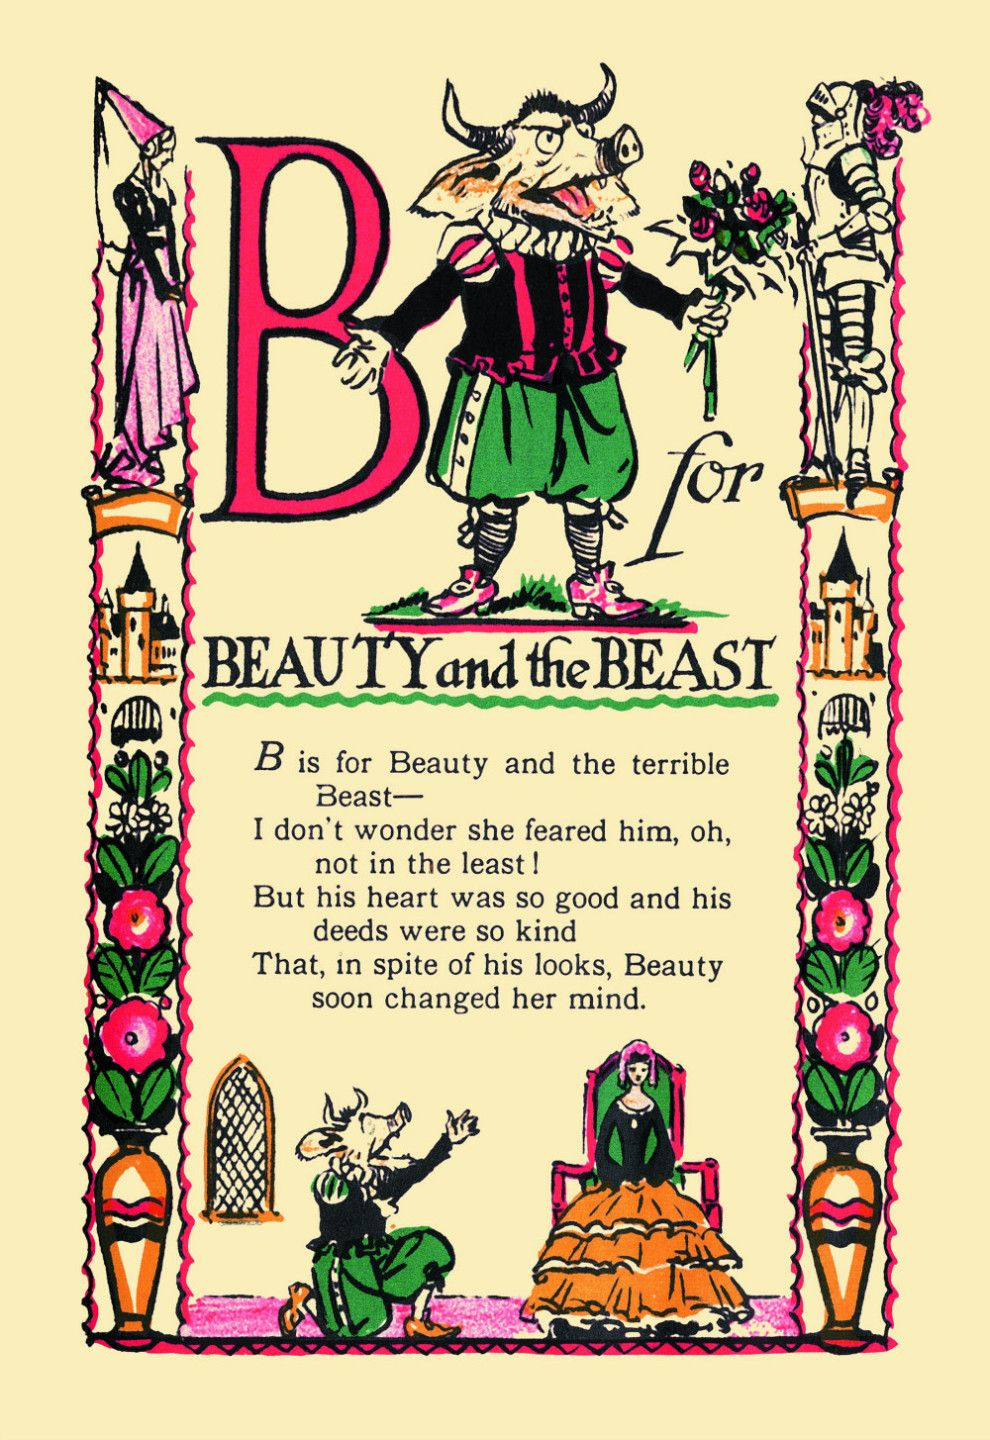 12 predisney images of beauty and the beast thatll make